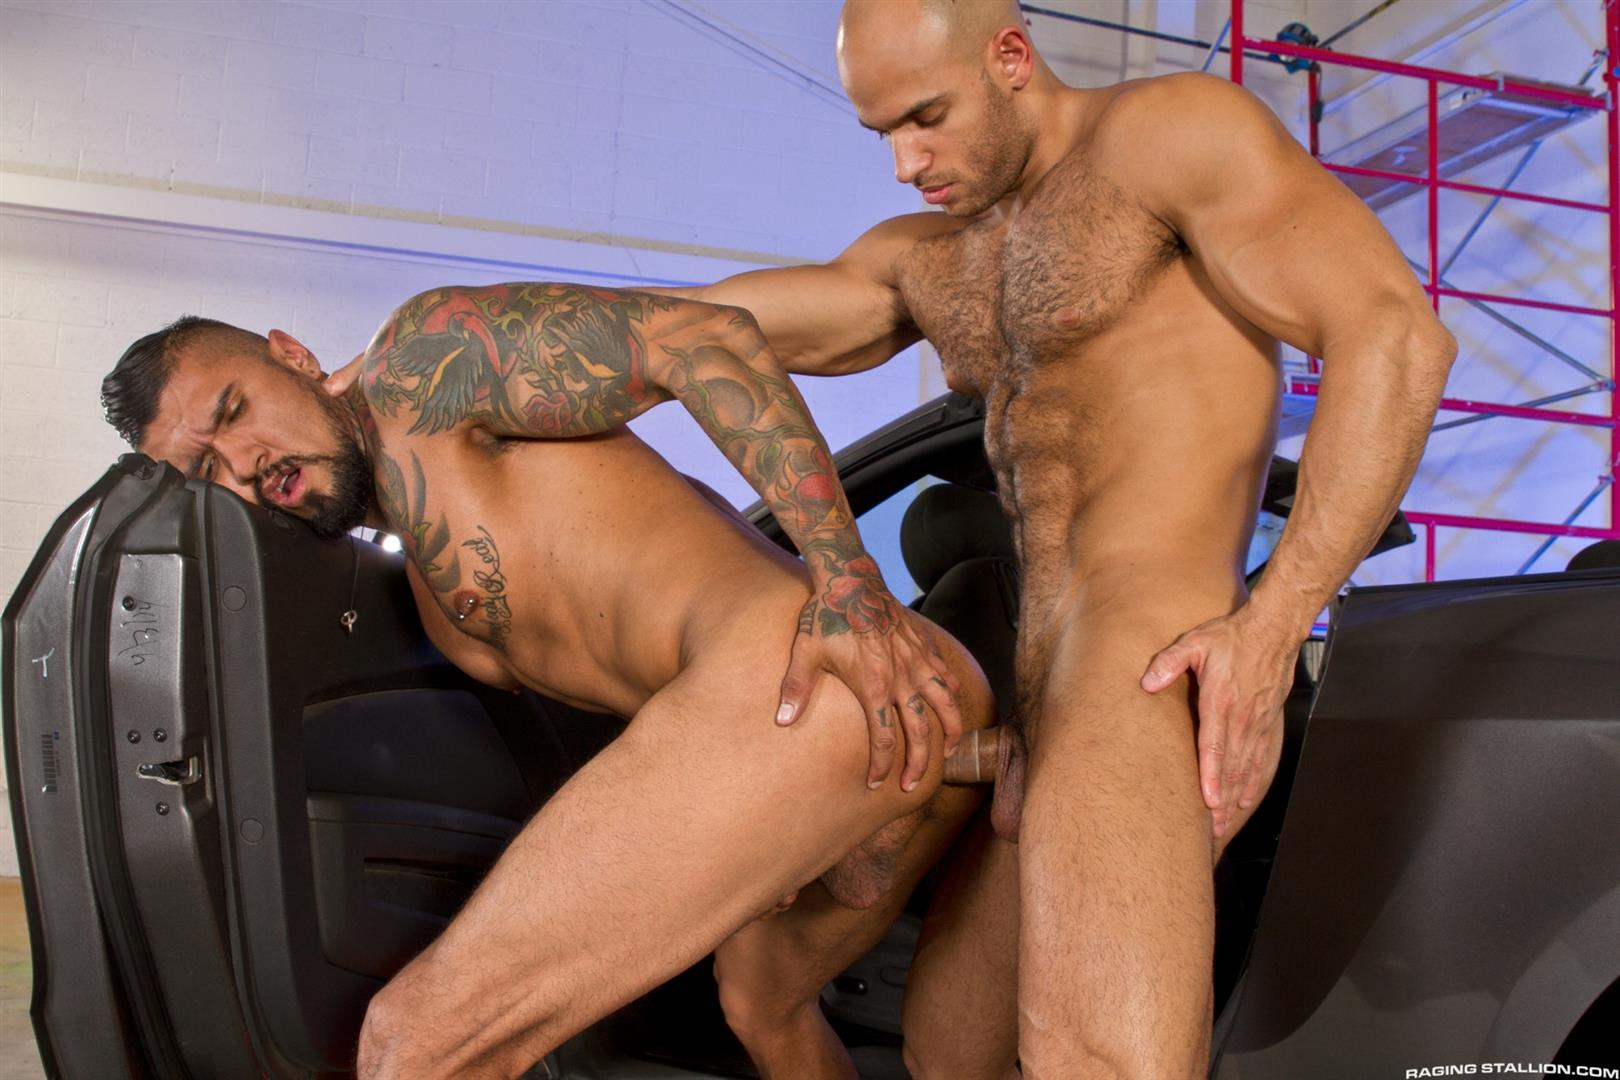 Raging-Stallion-Sean-Zevran-and-Boomer-Banks-Bottoms-For-The-First-Time-Big-Uncut-Cock-Amateur-Gay-Porn-09 BREAKING NEWS: Boomer Banks Bottoms For The First Time With A Big Uncut Cock